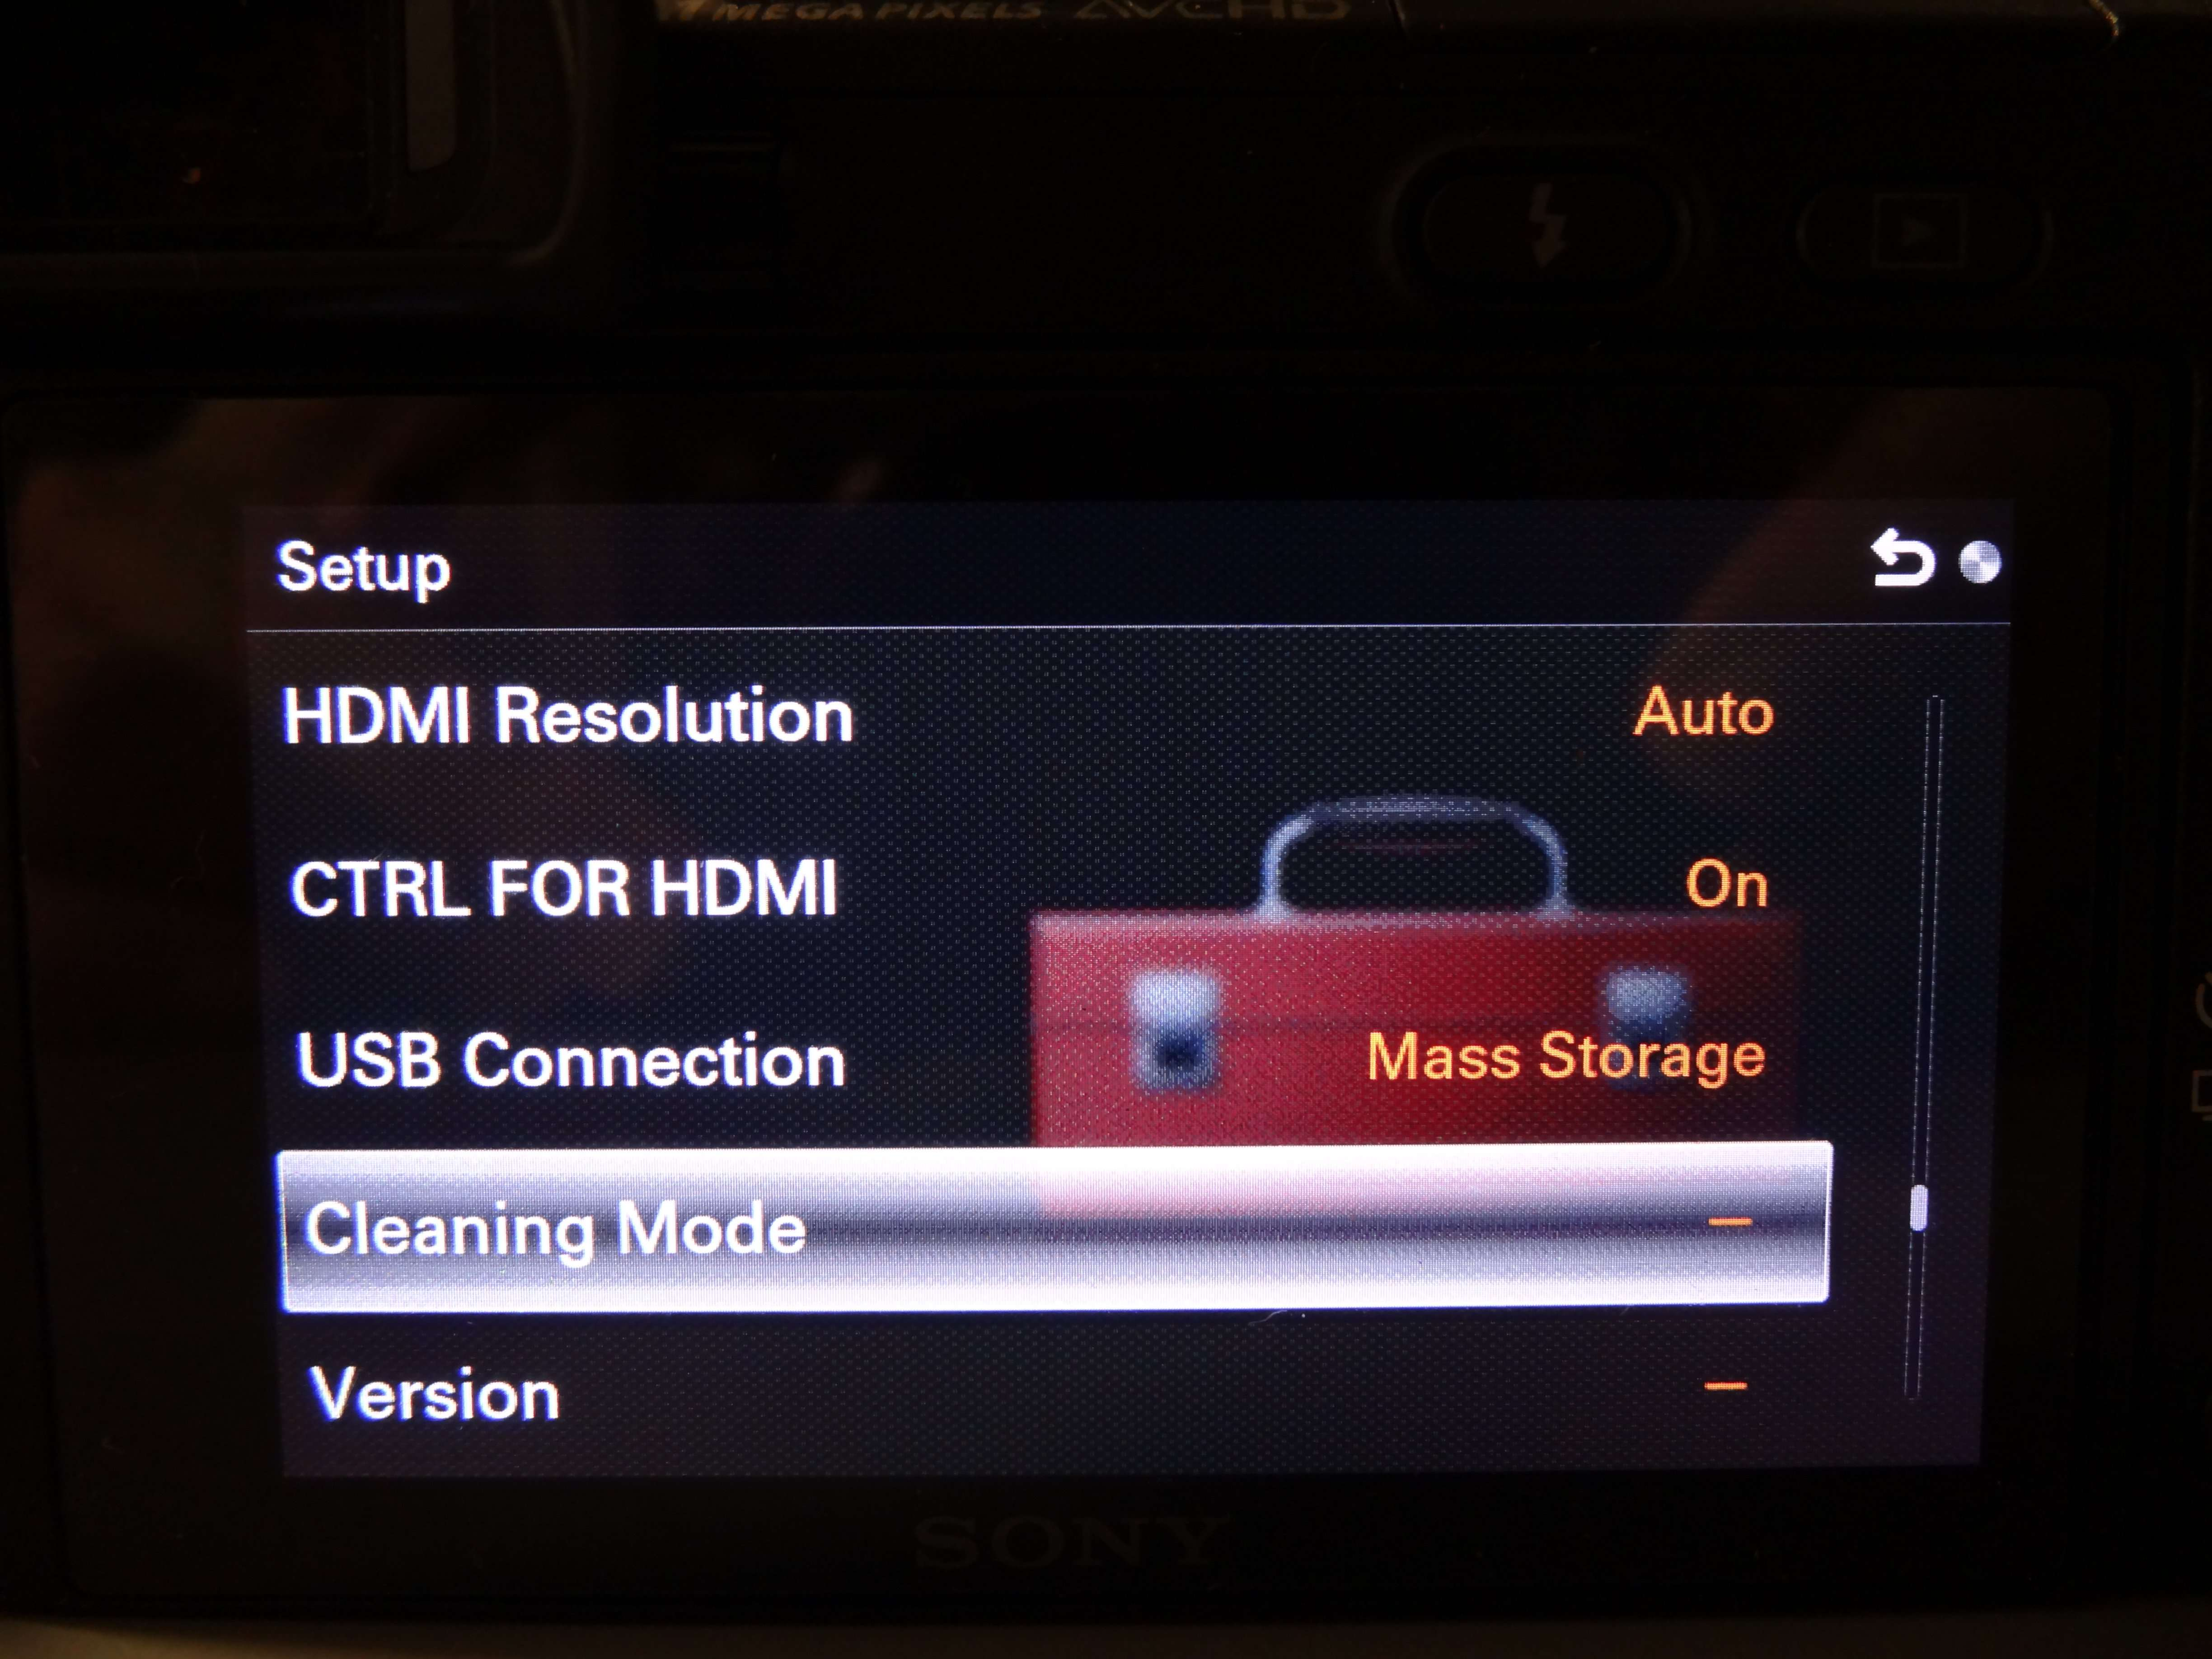 Camera Built-in Cleaning Mode